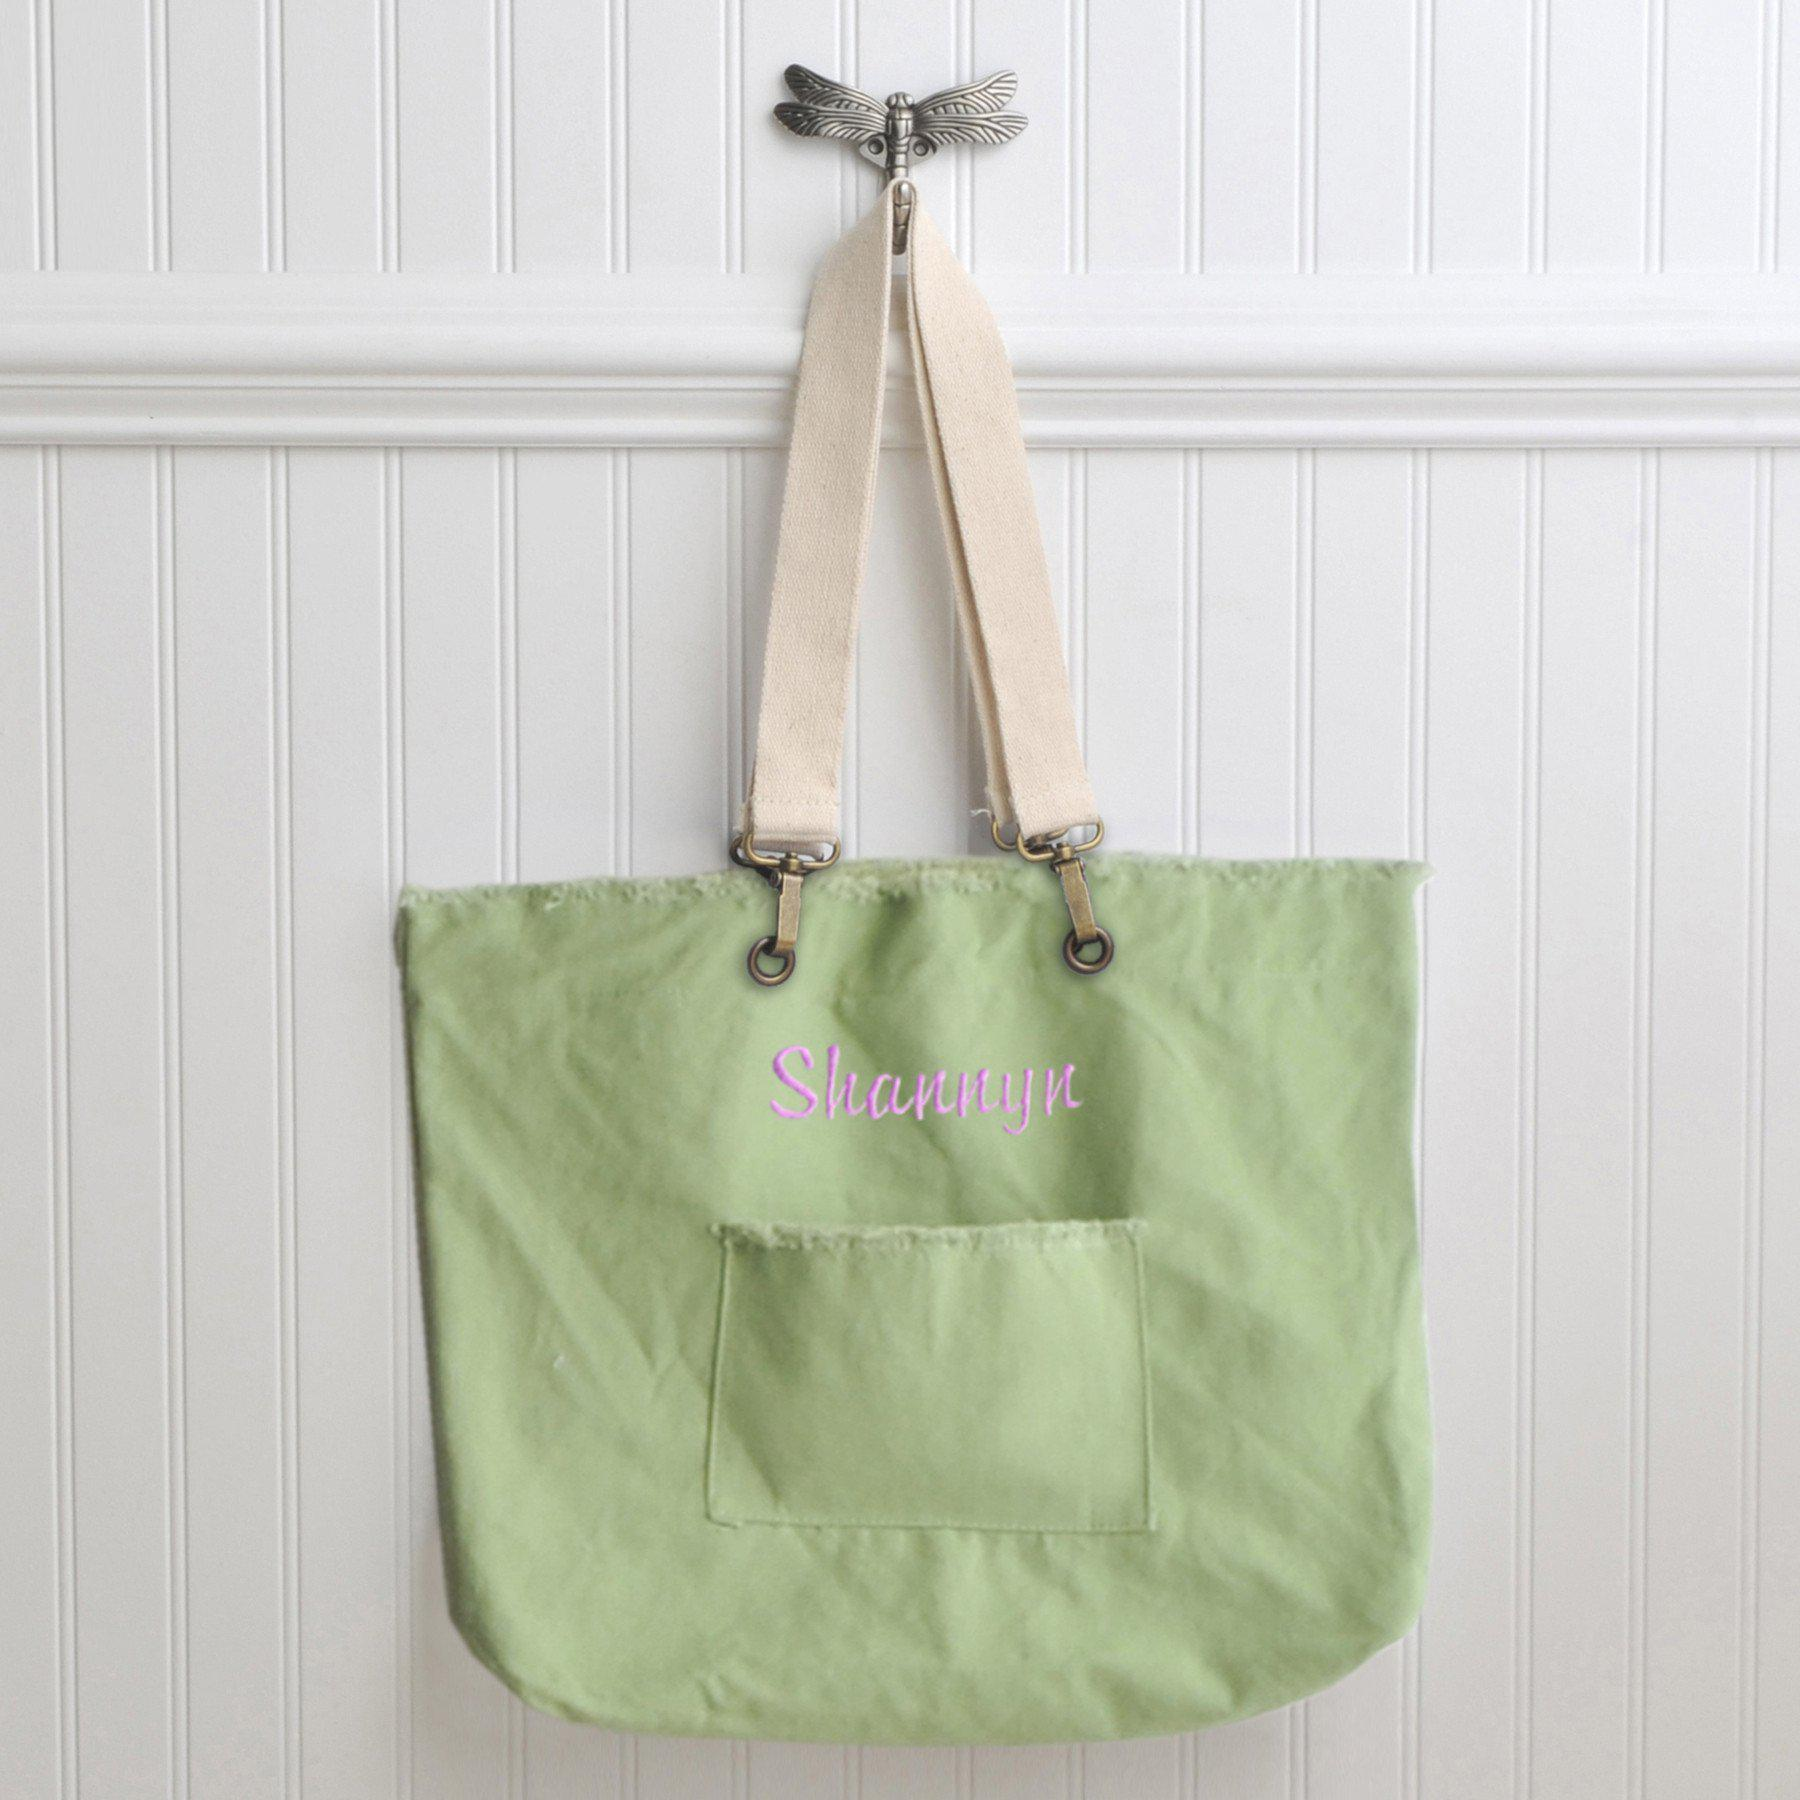 Personalized-Canvas-Tote-Bag-Choose-from-4-Colors